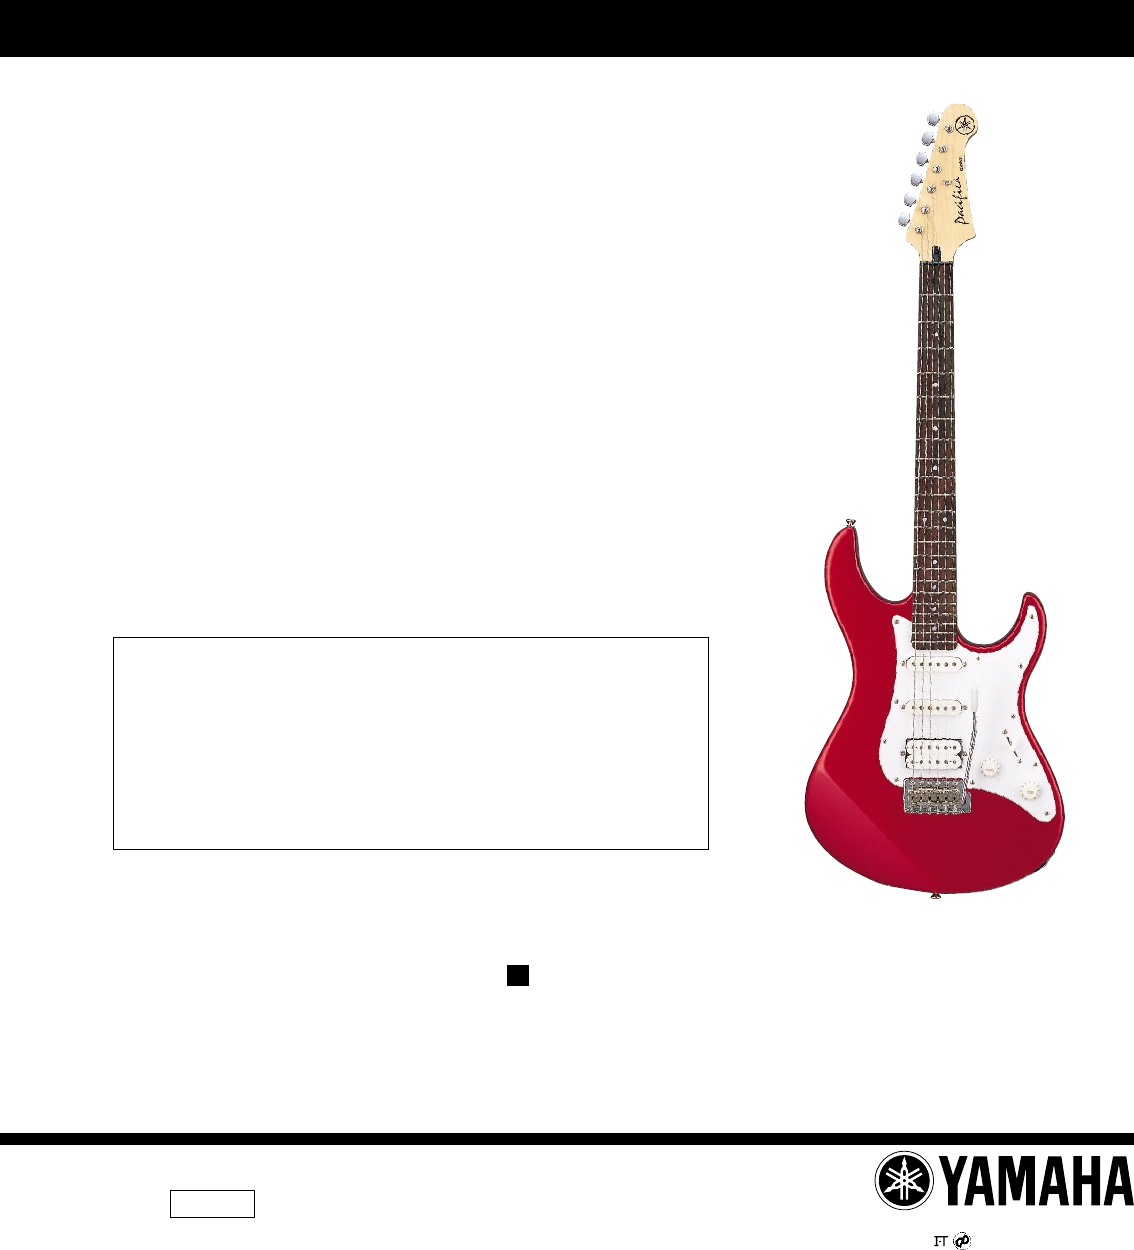 Wiring Diagram Yamaha Pacifica 921 Electrical Diagrams Electric Guitar User Manual To The 1a40e10c F1f4 49d6 Bbb8 512